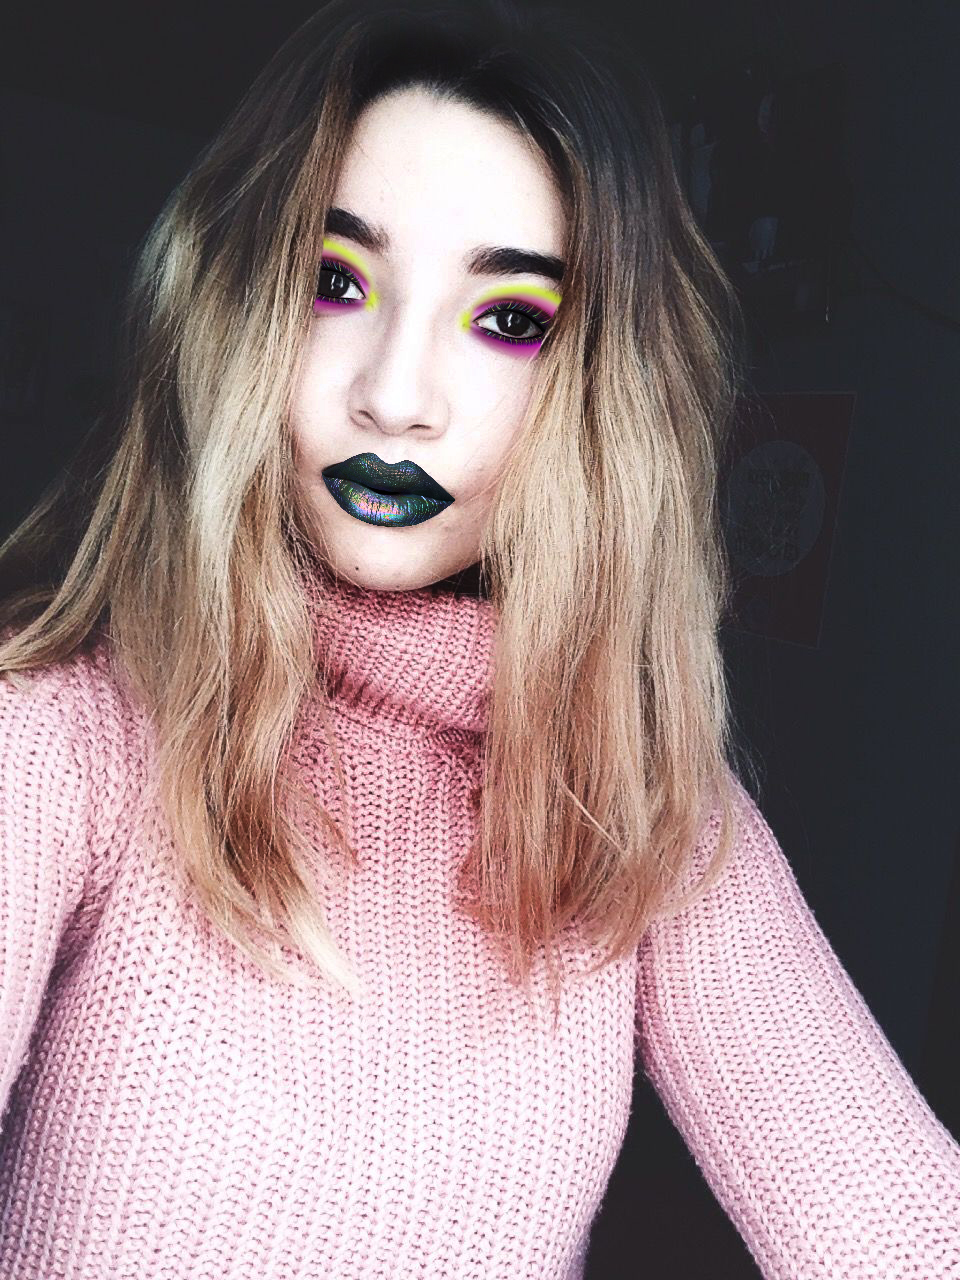 holographic makeup hack with picsart photo editor